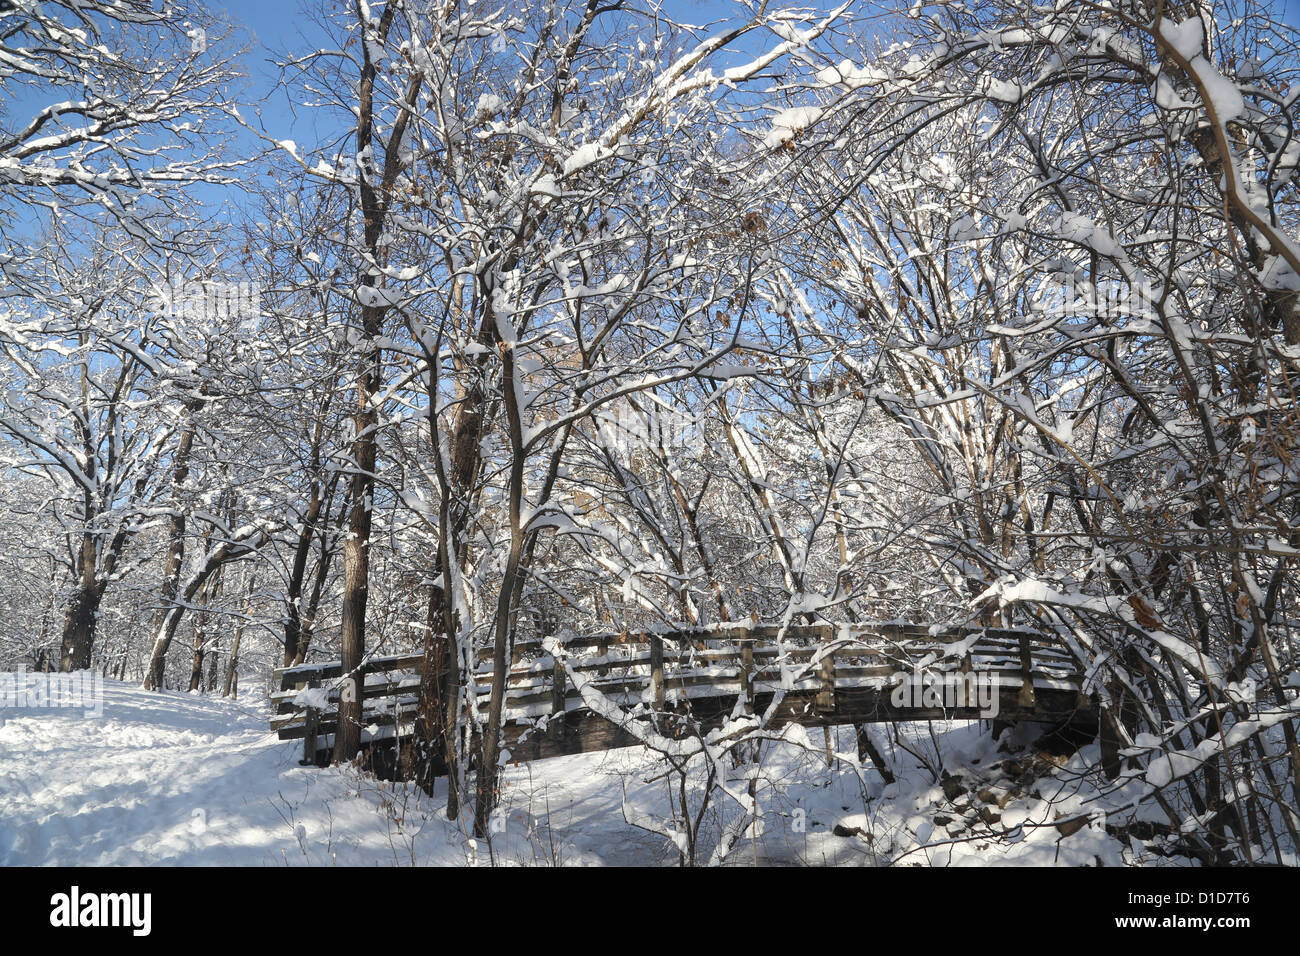 a-foot-bridge-covered-in-snow-in-a-park-